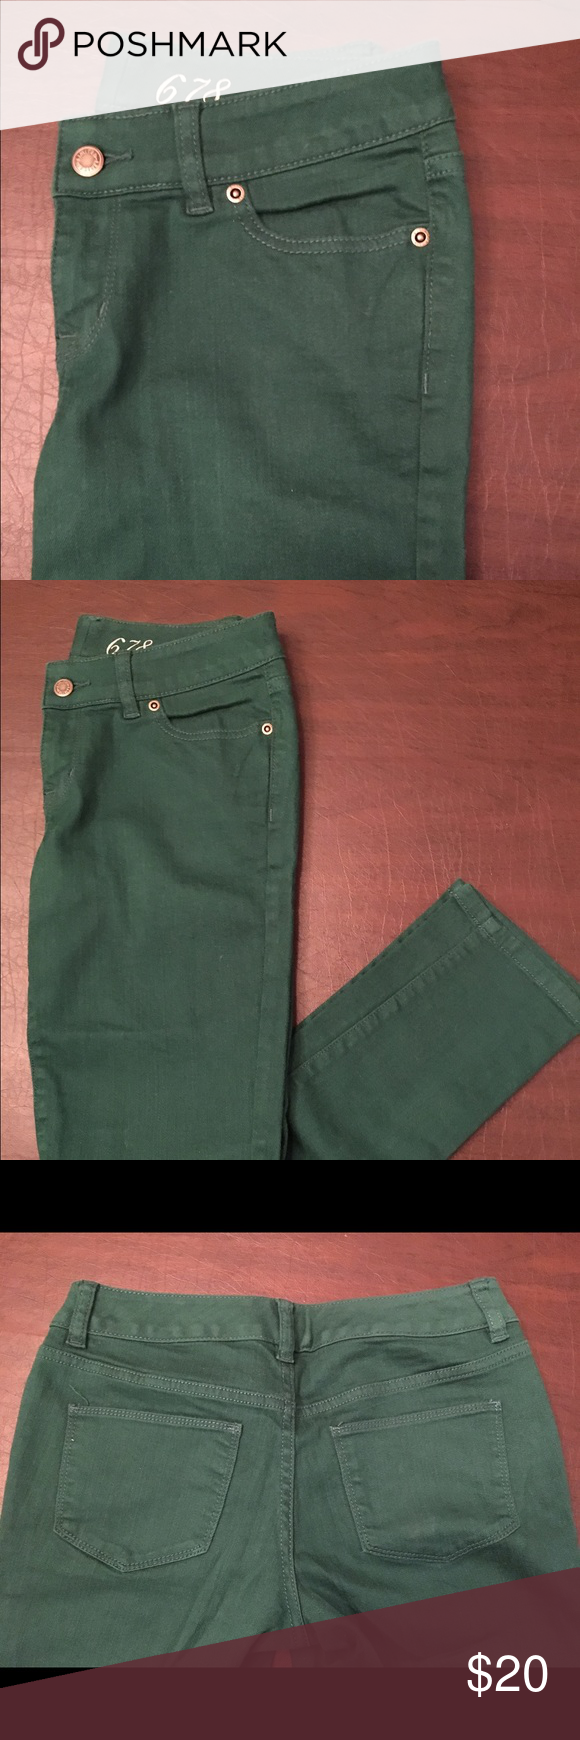 The Limited Emerald Green Skinny Jeans The Limited Emerald Green Skinny Jeans in Size 4. Low-Rise, Slim Hip and Thigh. Made of 98% cotton and 2% spandex. Excellent pre-owned condition. The Limited Jeans Skinny